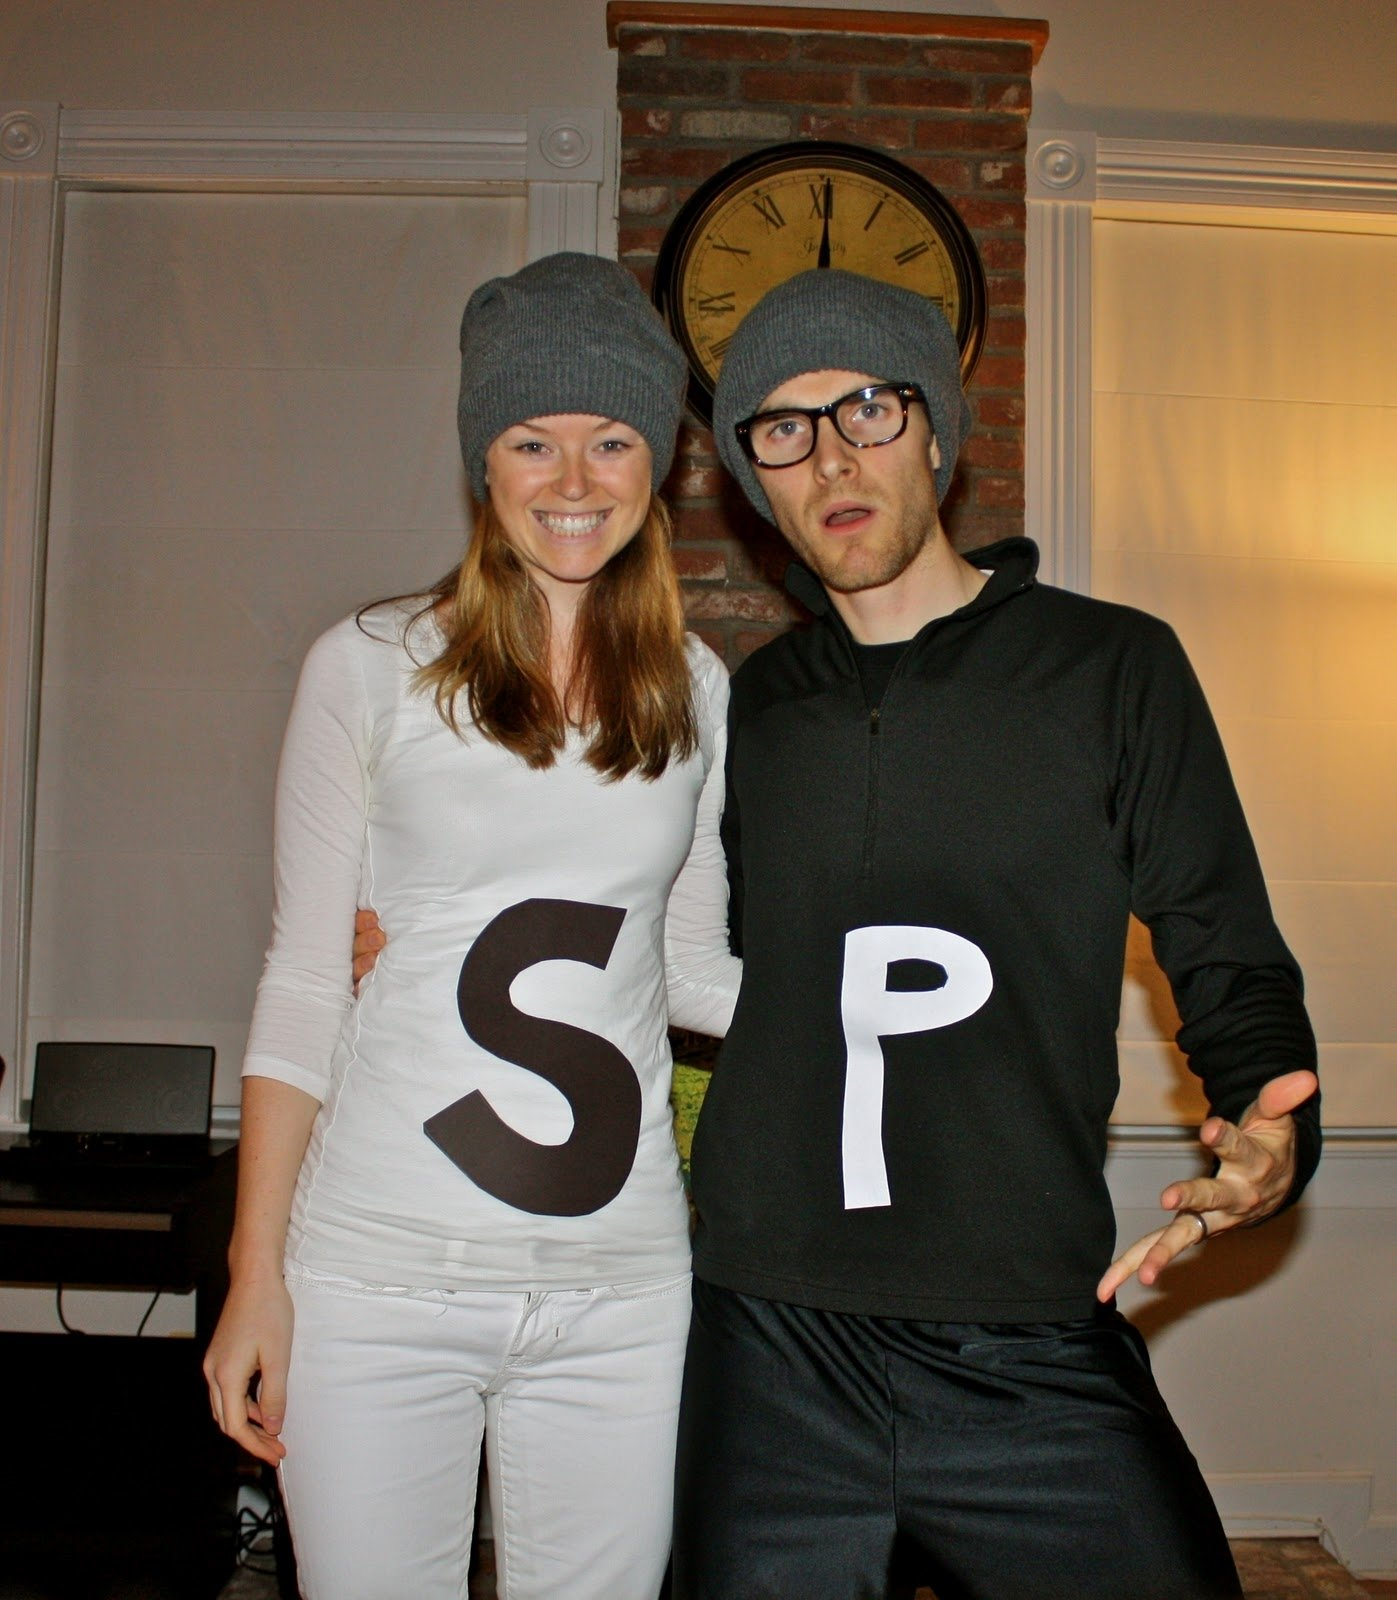 Couples Food Costumes Halloween Costume Ideas For Procrastinating